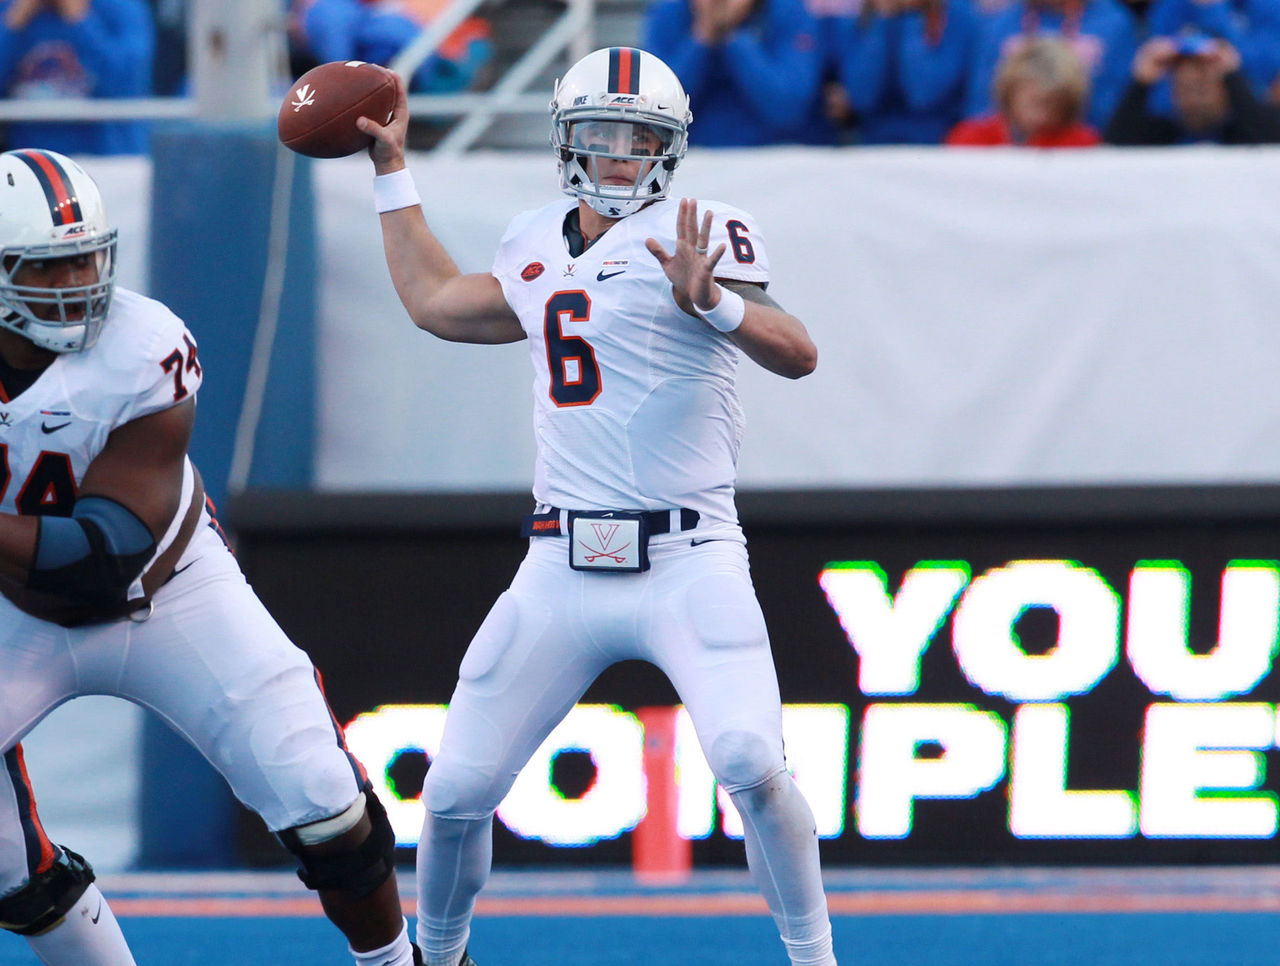 Cropped 2017 09 23t021218z 1720998285 nocid rtrmadp 3 ncaa football virginia at boise state